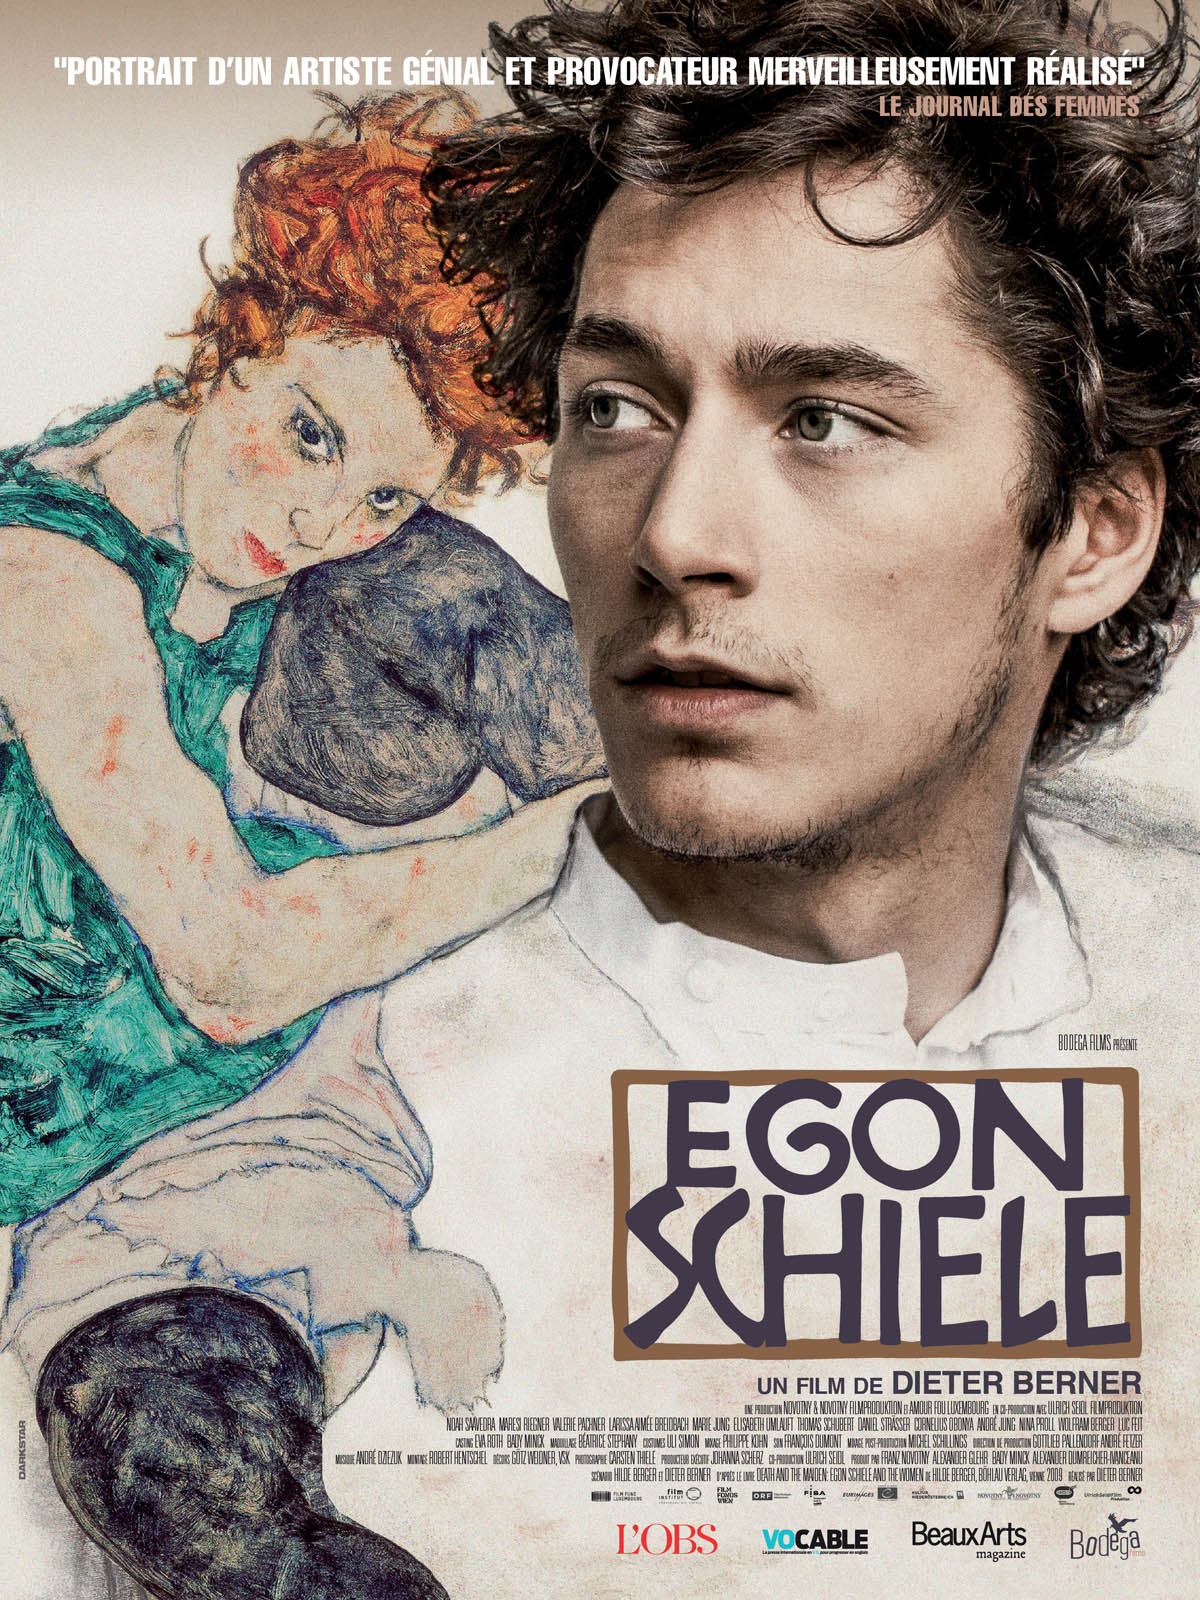 Egon Schiele Streaming 720p French